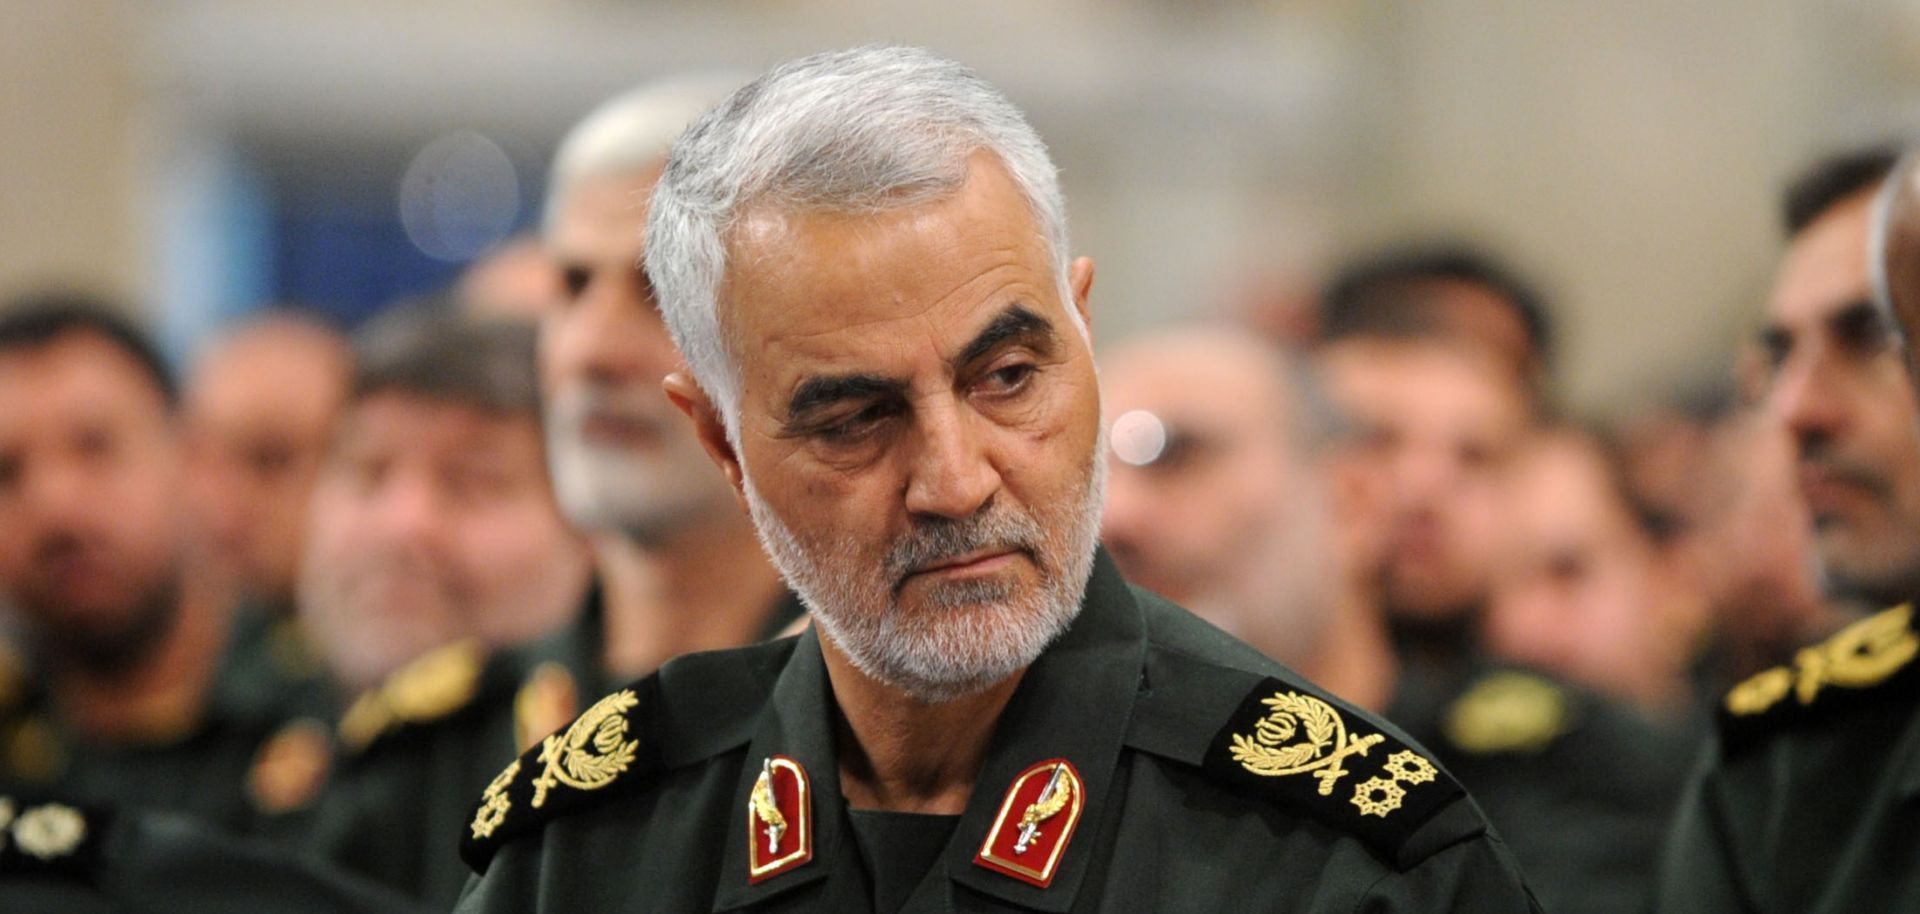 Iranian Quds Force Cmdr. Qassem Soleimani attends a meeting with the Islamic Revolution Guards Corps in Tehran on Sept. 18, 2016.